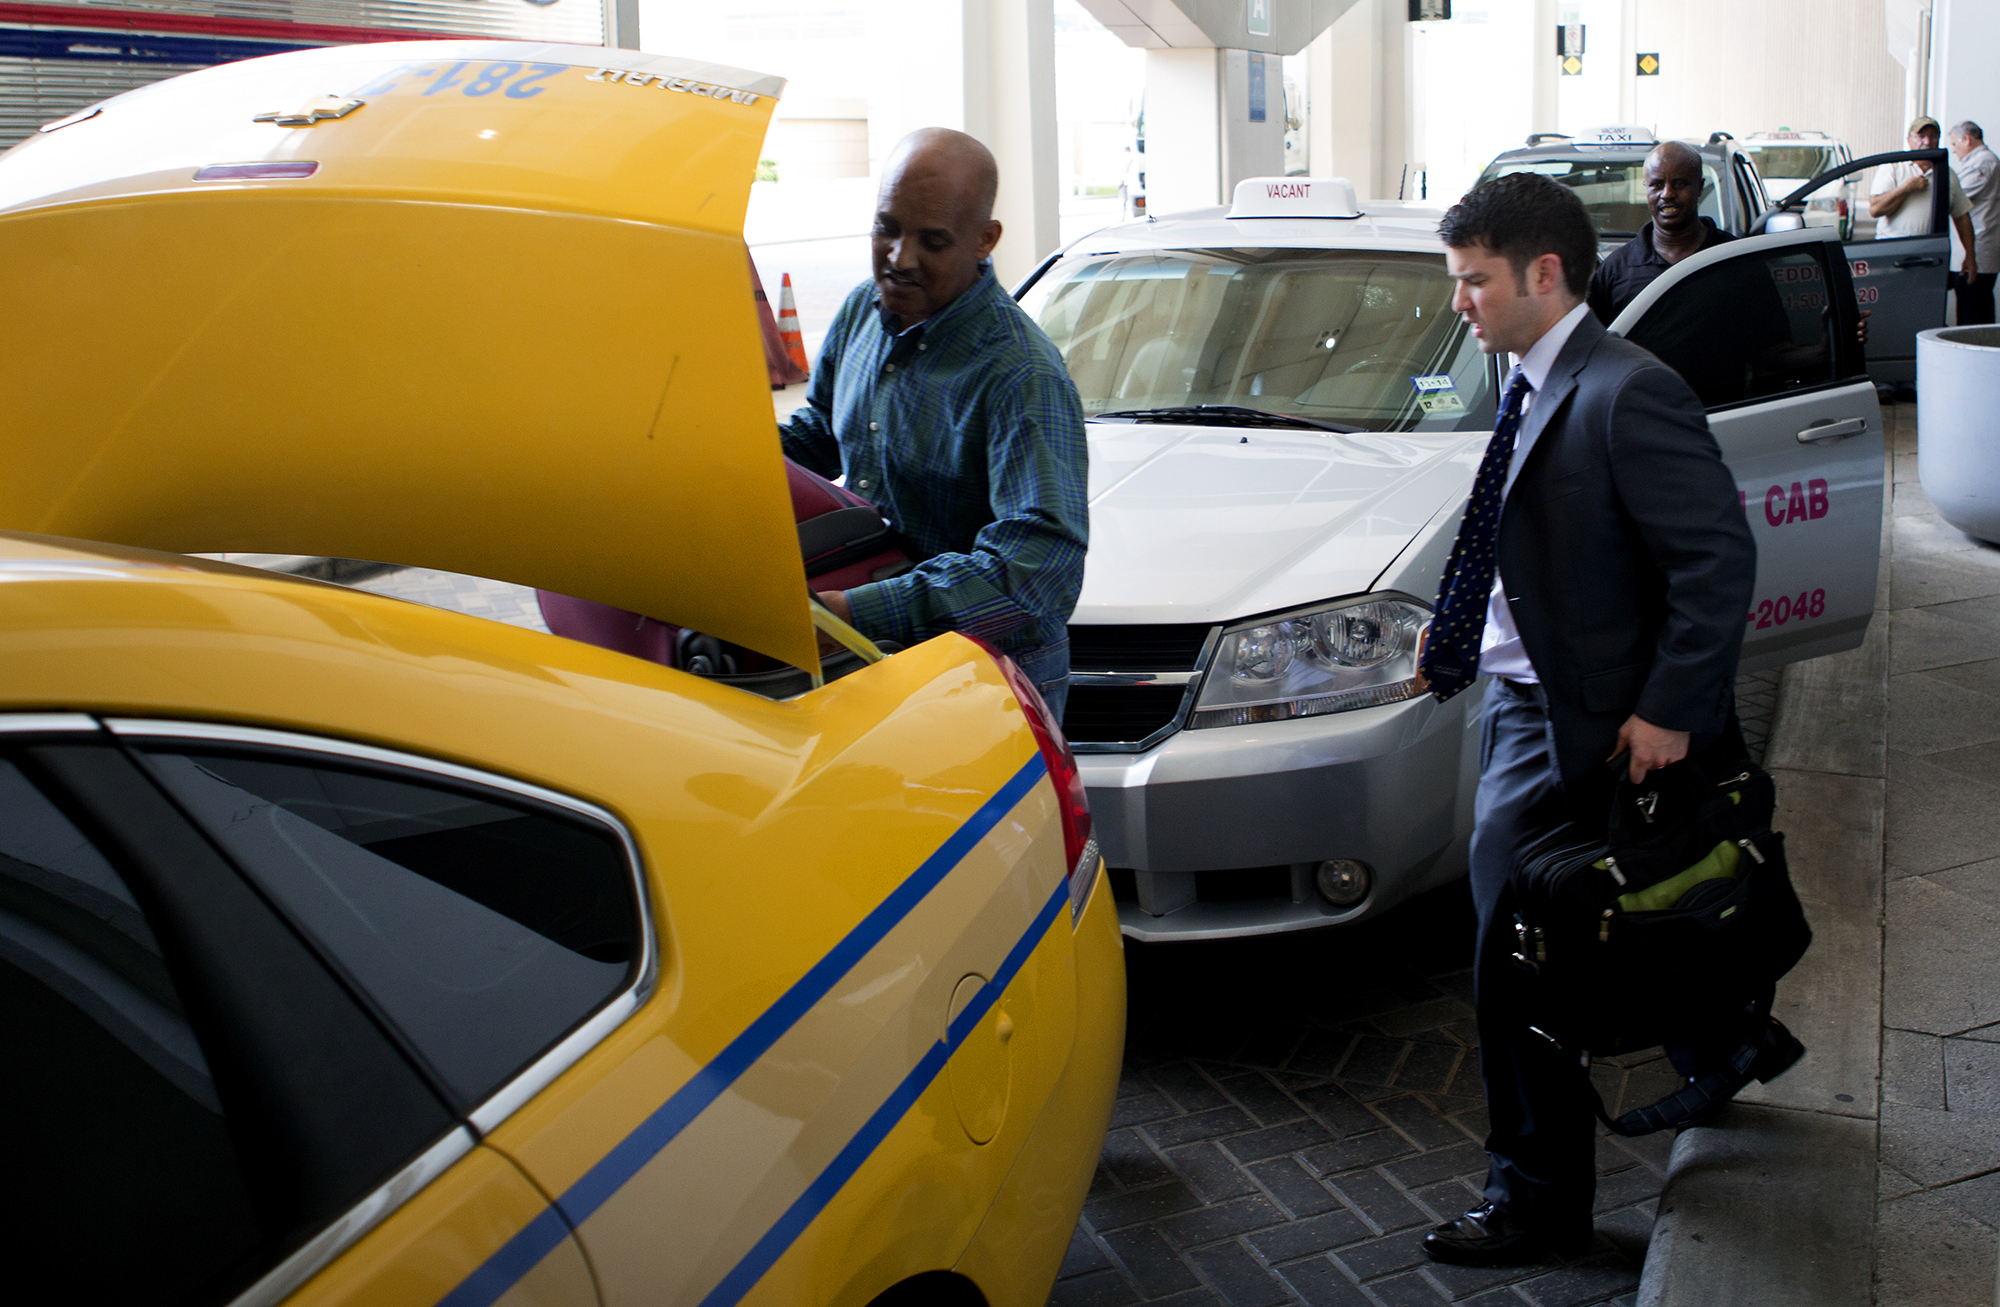 New Rules Would Authorize Upstart Cab Competitors But Clip